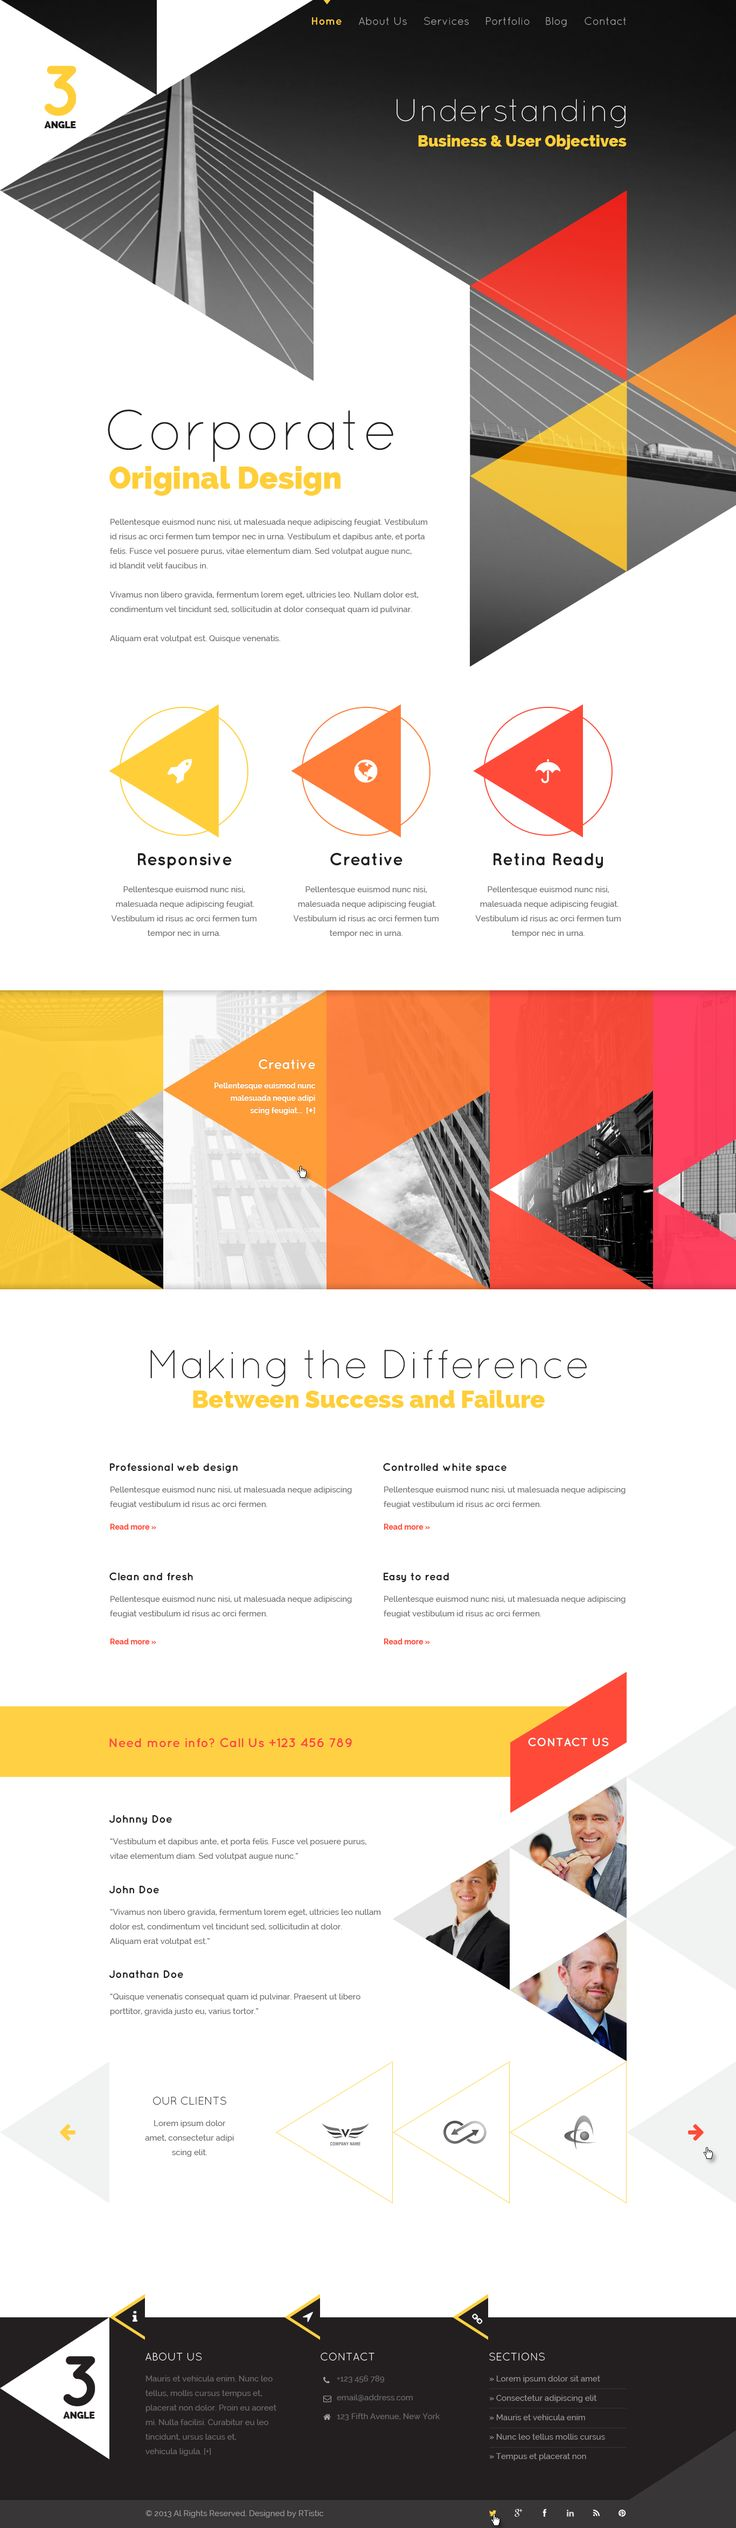 3Angle - Agency Creative HTML Template http://themeforest.net/item/3angle-agency-creative-html-template/6175170?ref=wpaw #web #design #html #creative